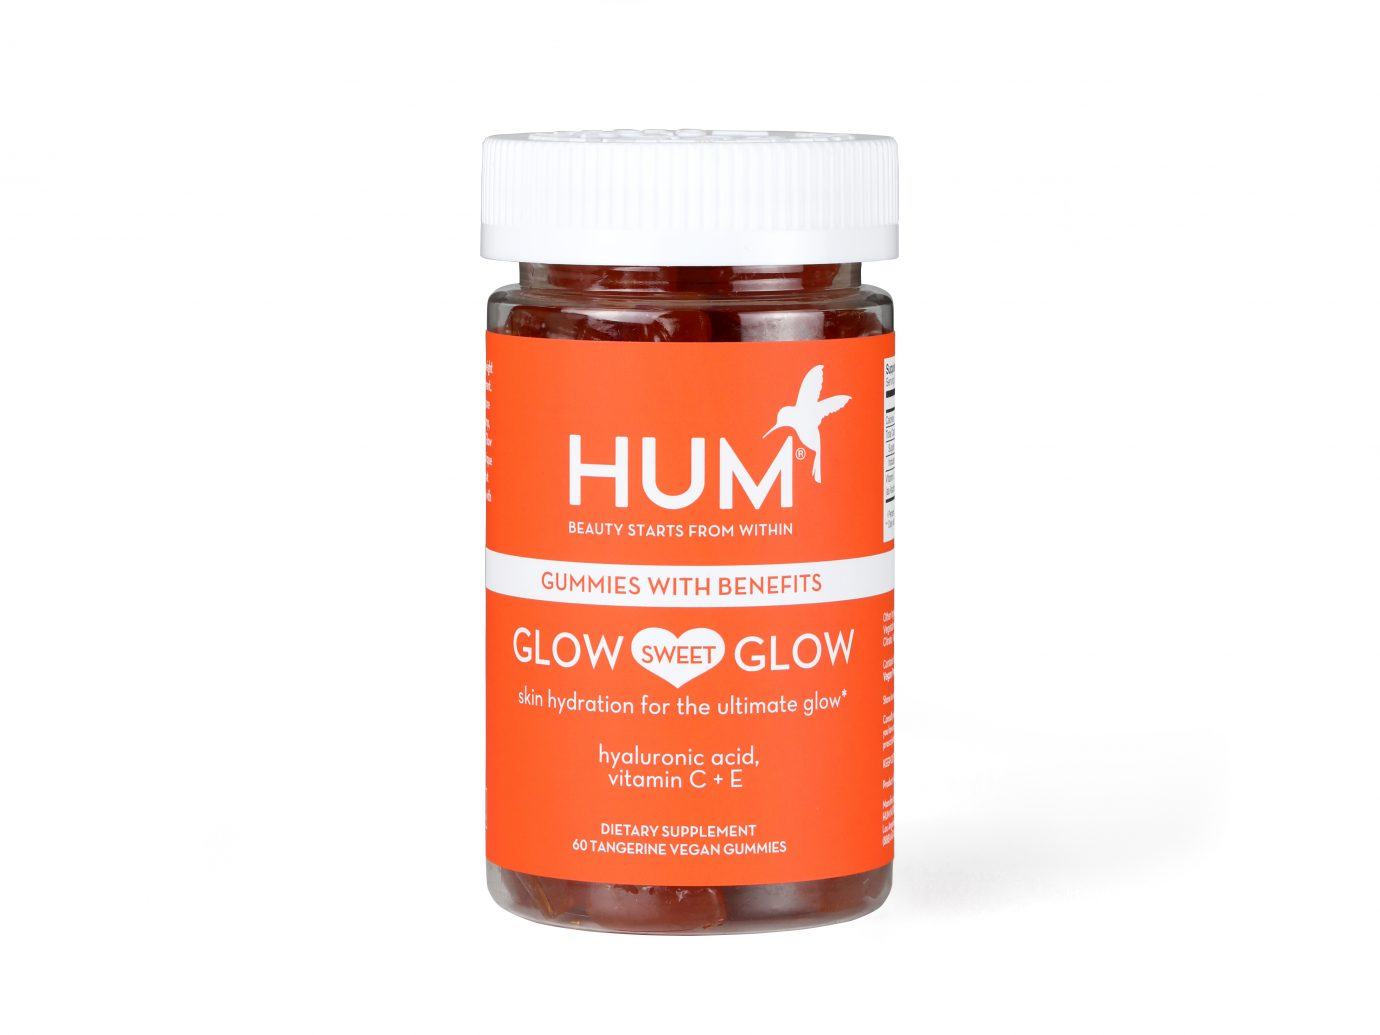 Summer Glow product Hum Glow Sweet Glow